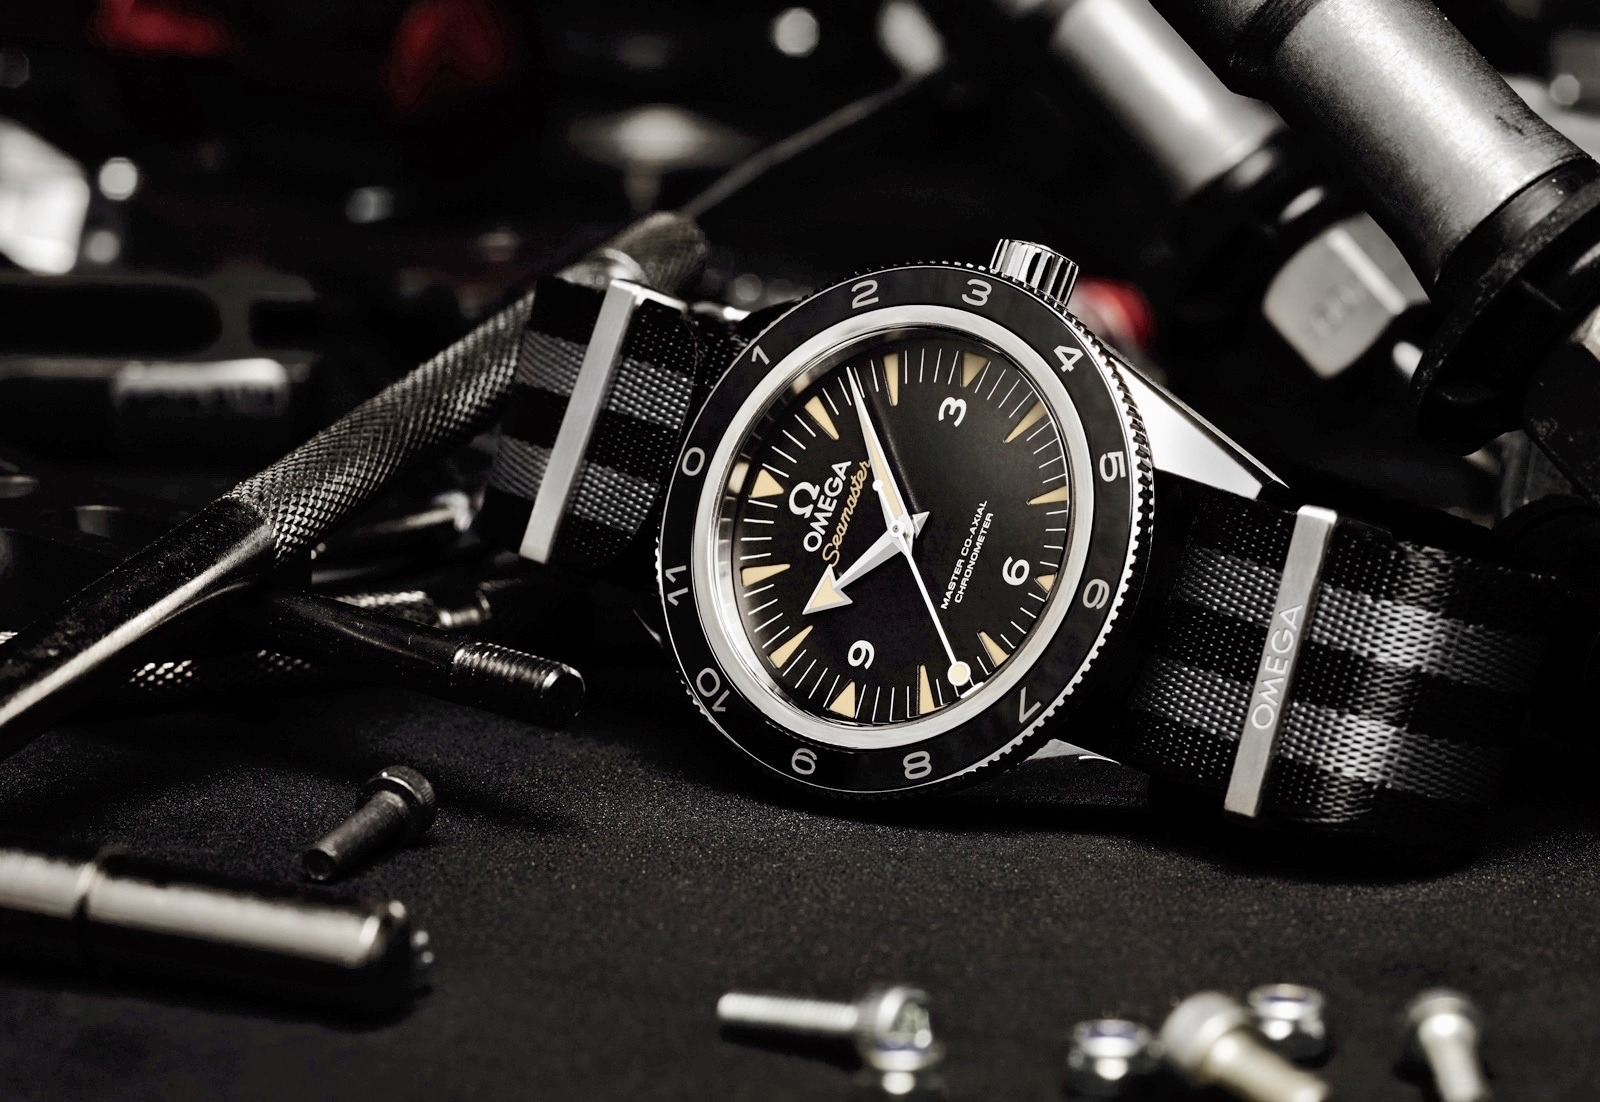 007 Omega Watch for him when The World Is Not Enough